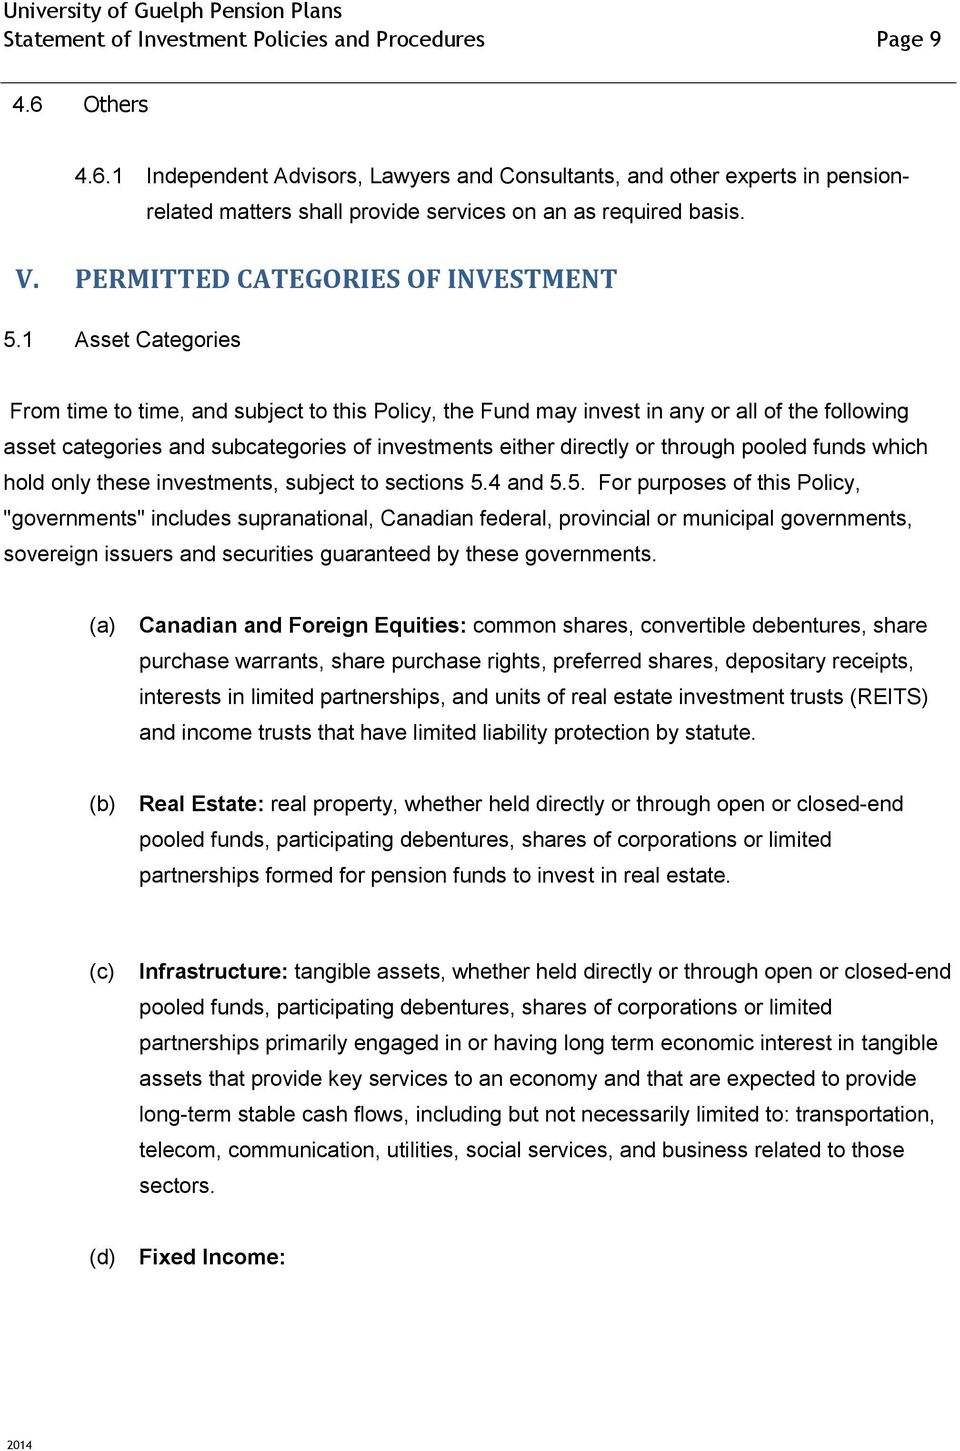 1 Asset Categories From time to time, and subject to this Policy, the Fund may invest in any or all of the following asset categories and subcategories of investments either directly or through